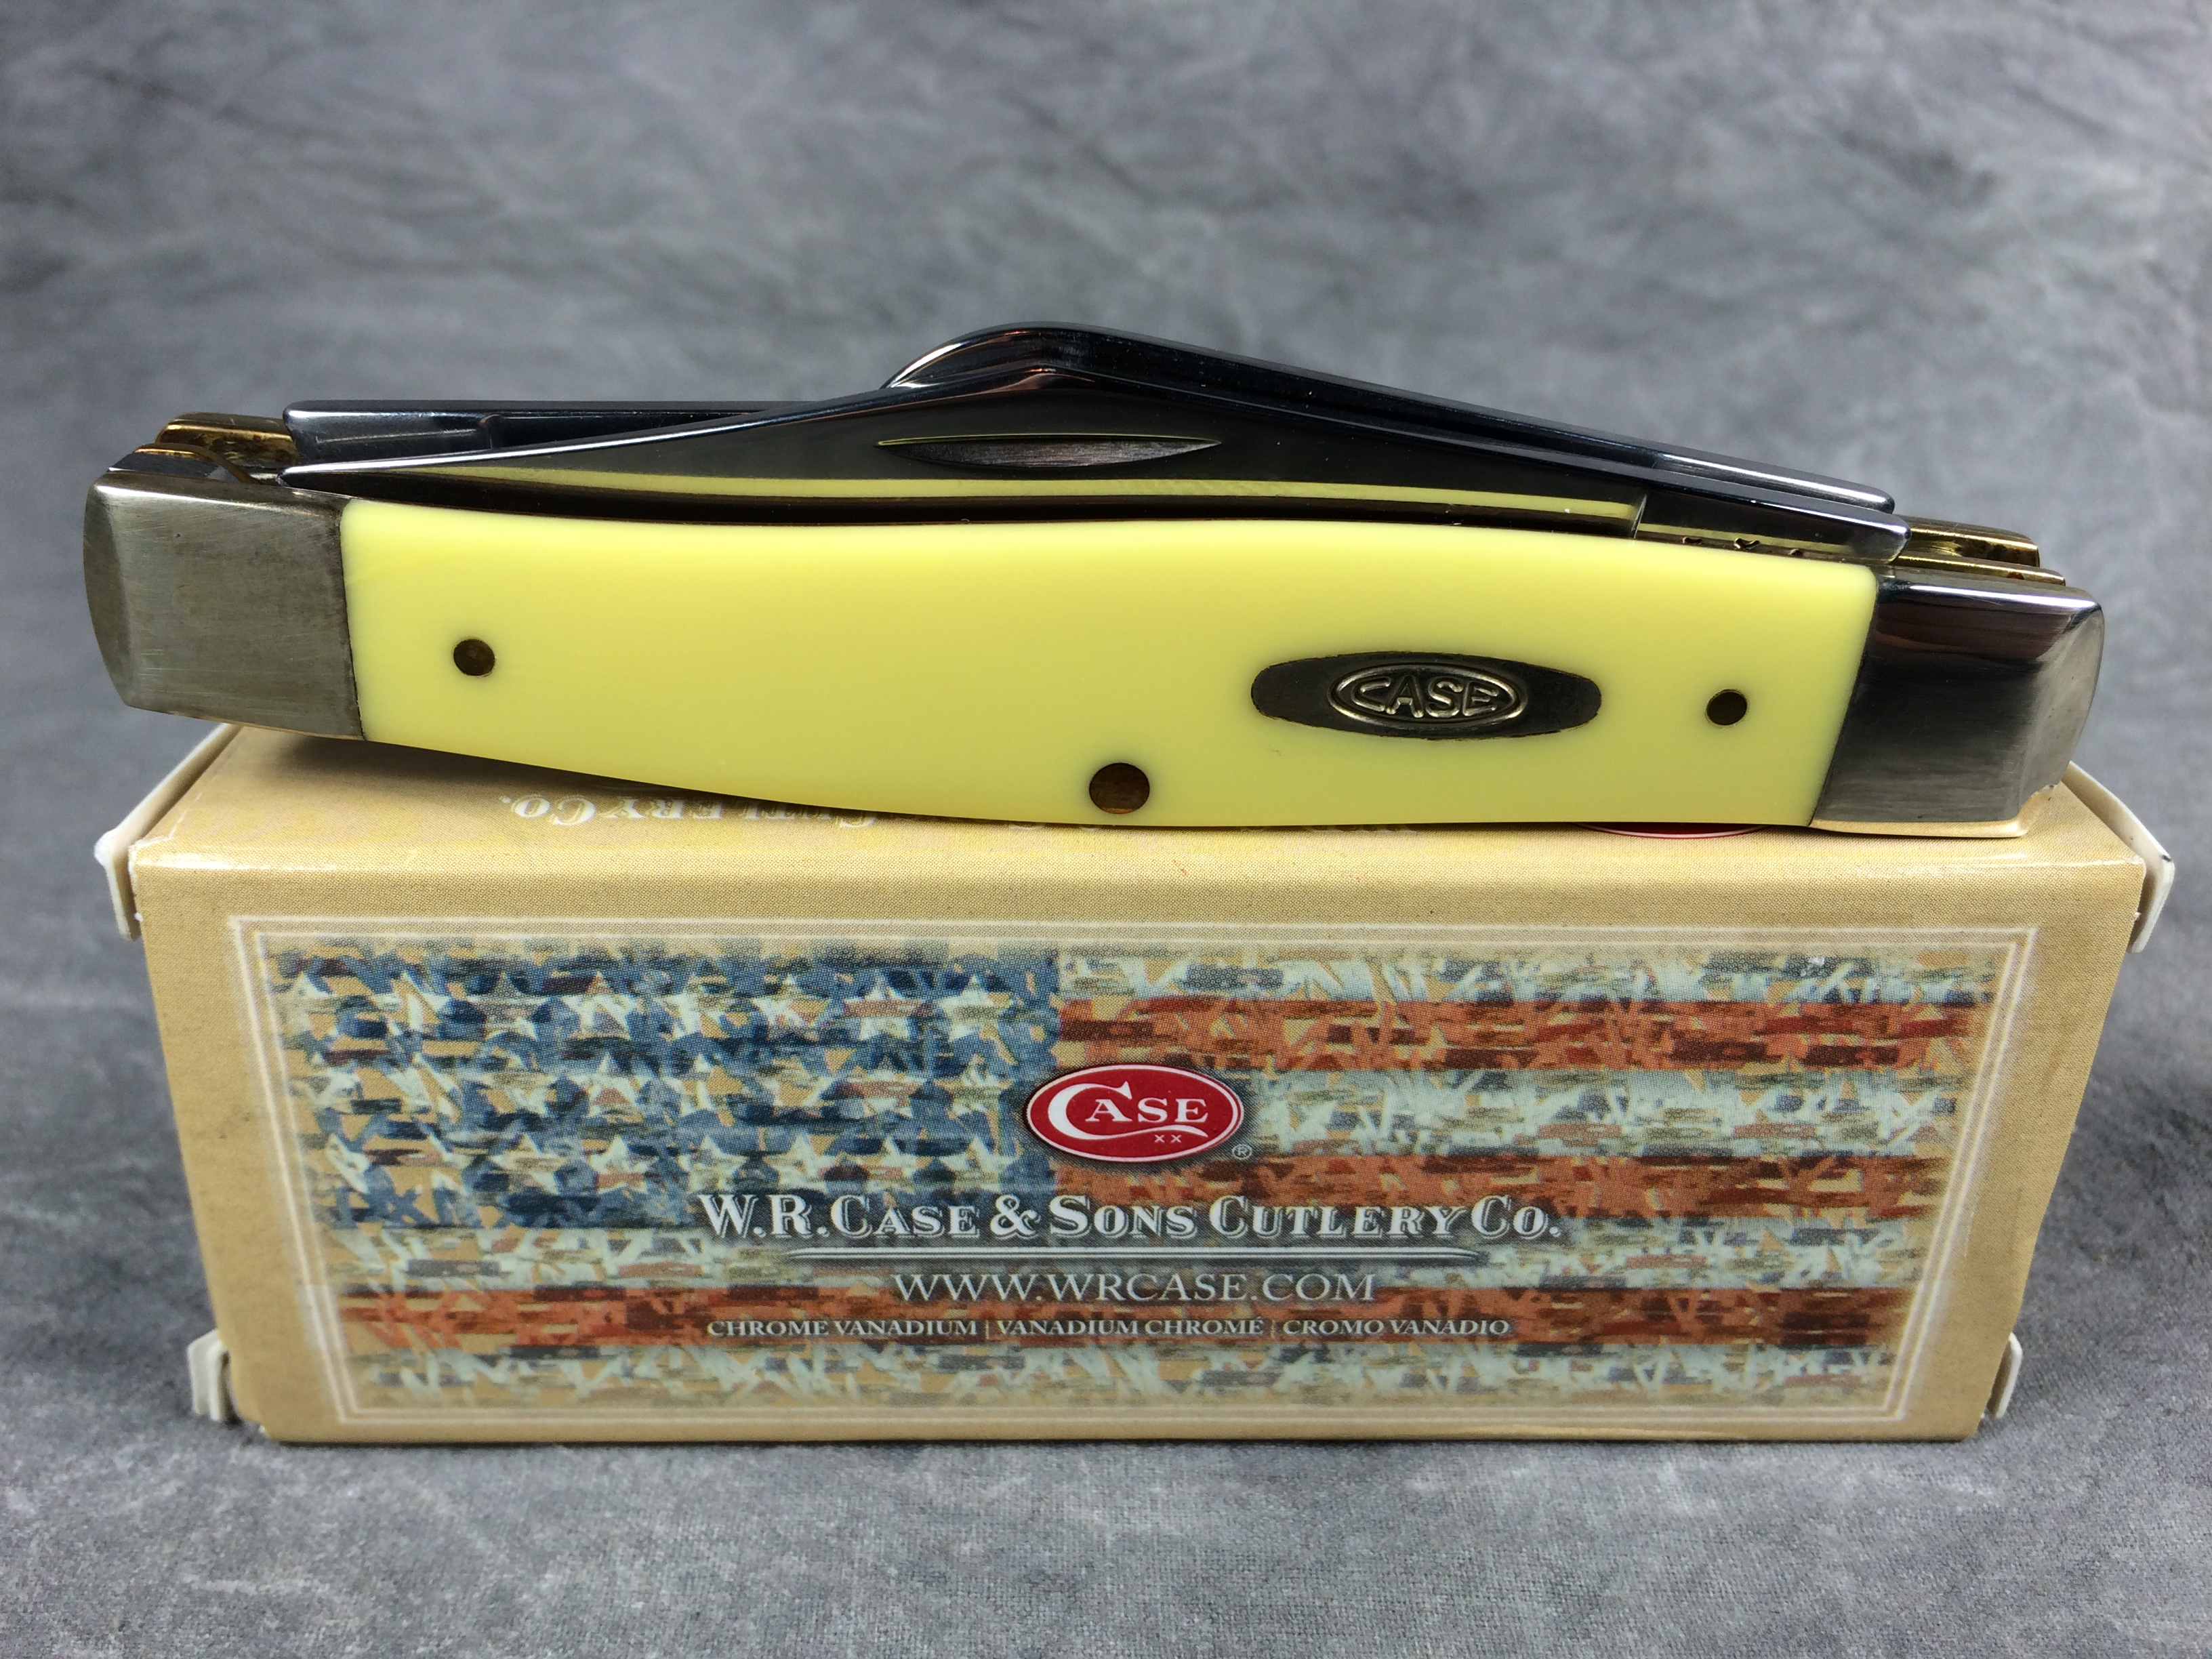 2012 case xx 3375 cv yellow large stockman pocket knife nmib